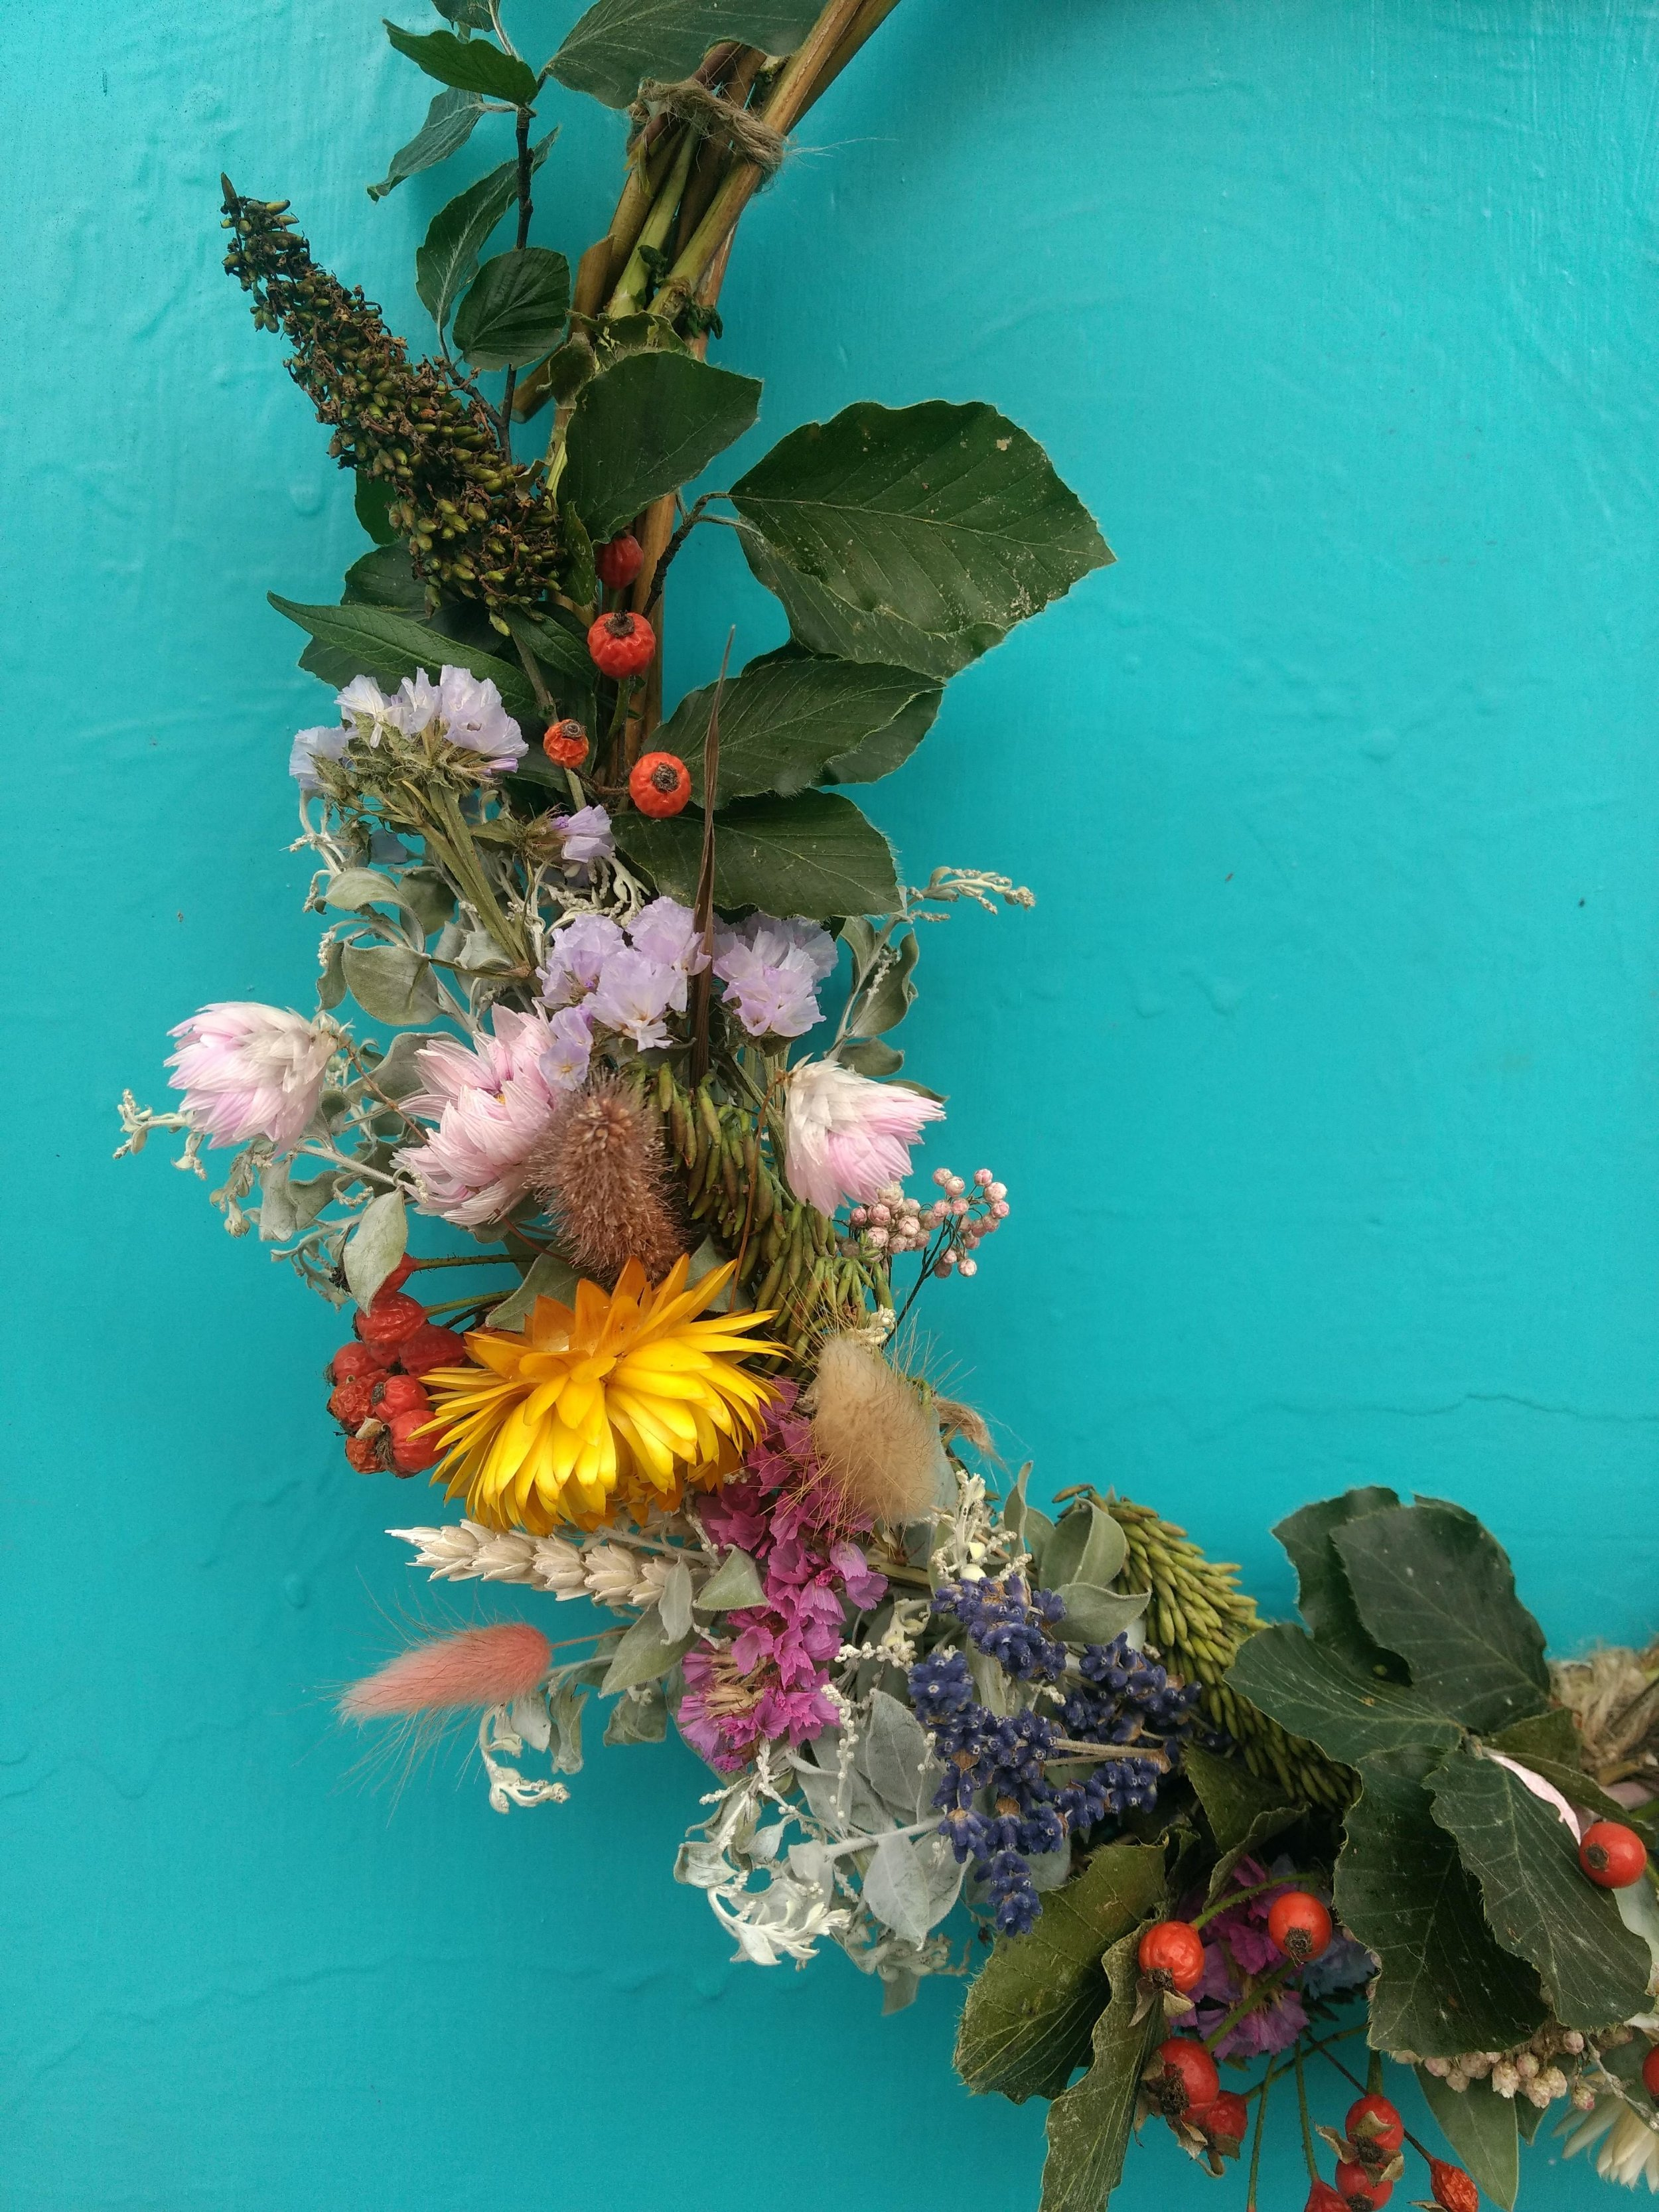 Seasonal Wild Flower Guide For Autumn Sustainable Wild Flower Wedding And Funeral Flowers By Briar Rose Design